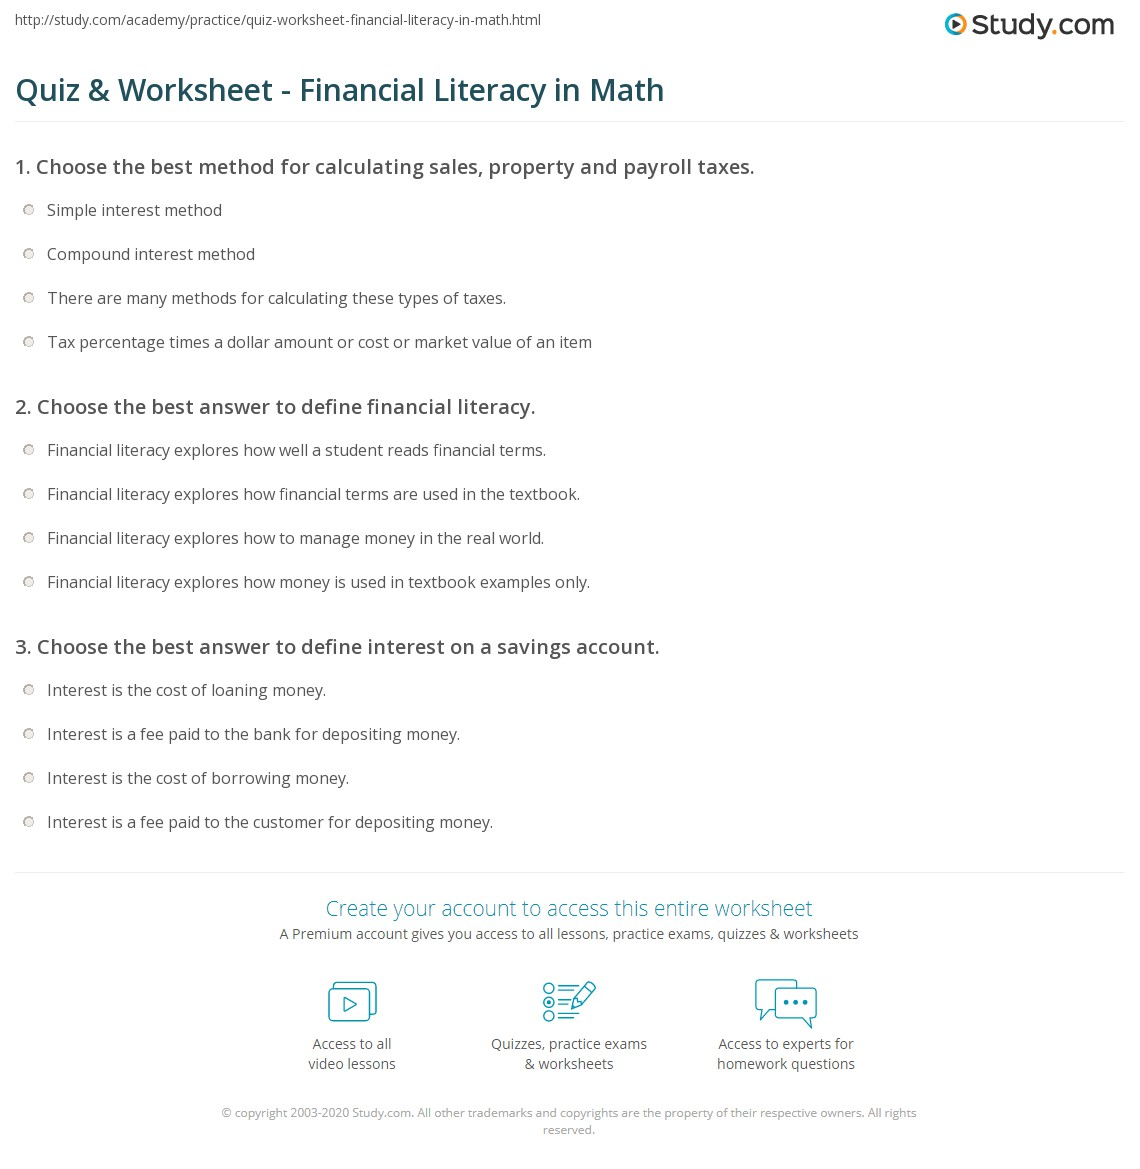 quiz worksheet financial literacy in math. Black Bedroom Furniture Sets. Home Design Ideas